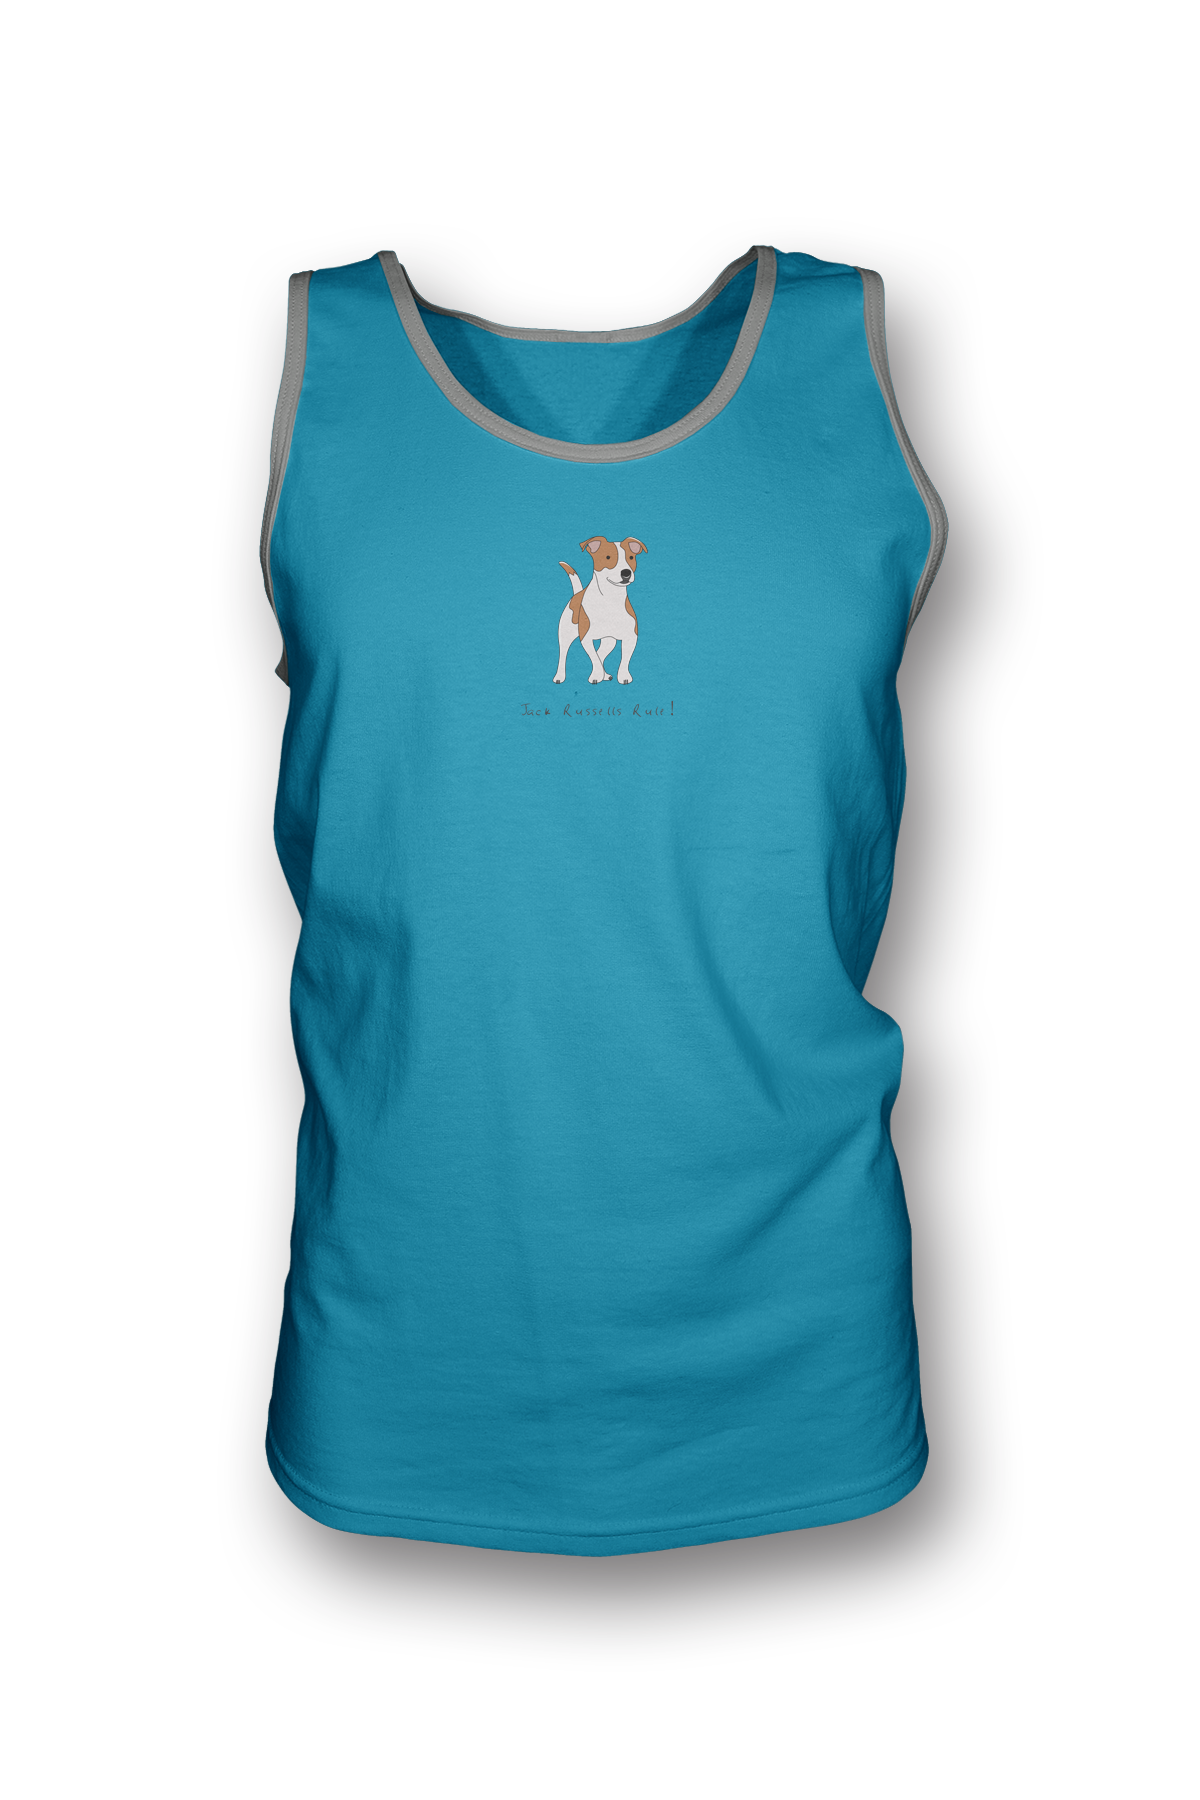 Mens Tank Top T-Shirt - Jack Russells Rule! Caribbean Blue